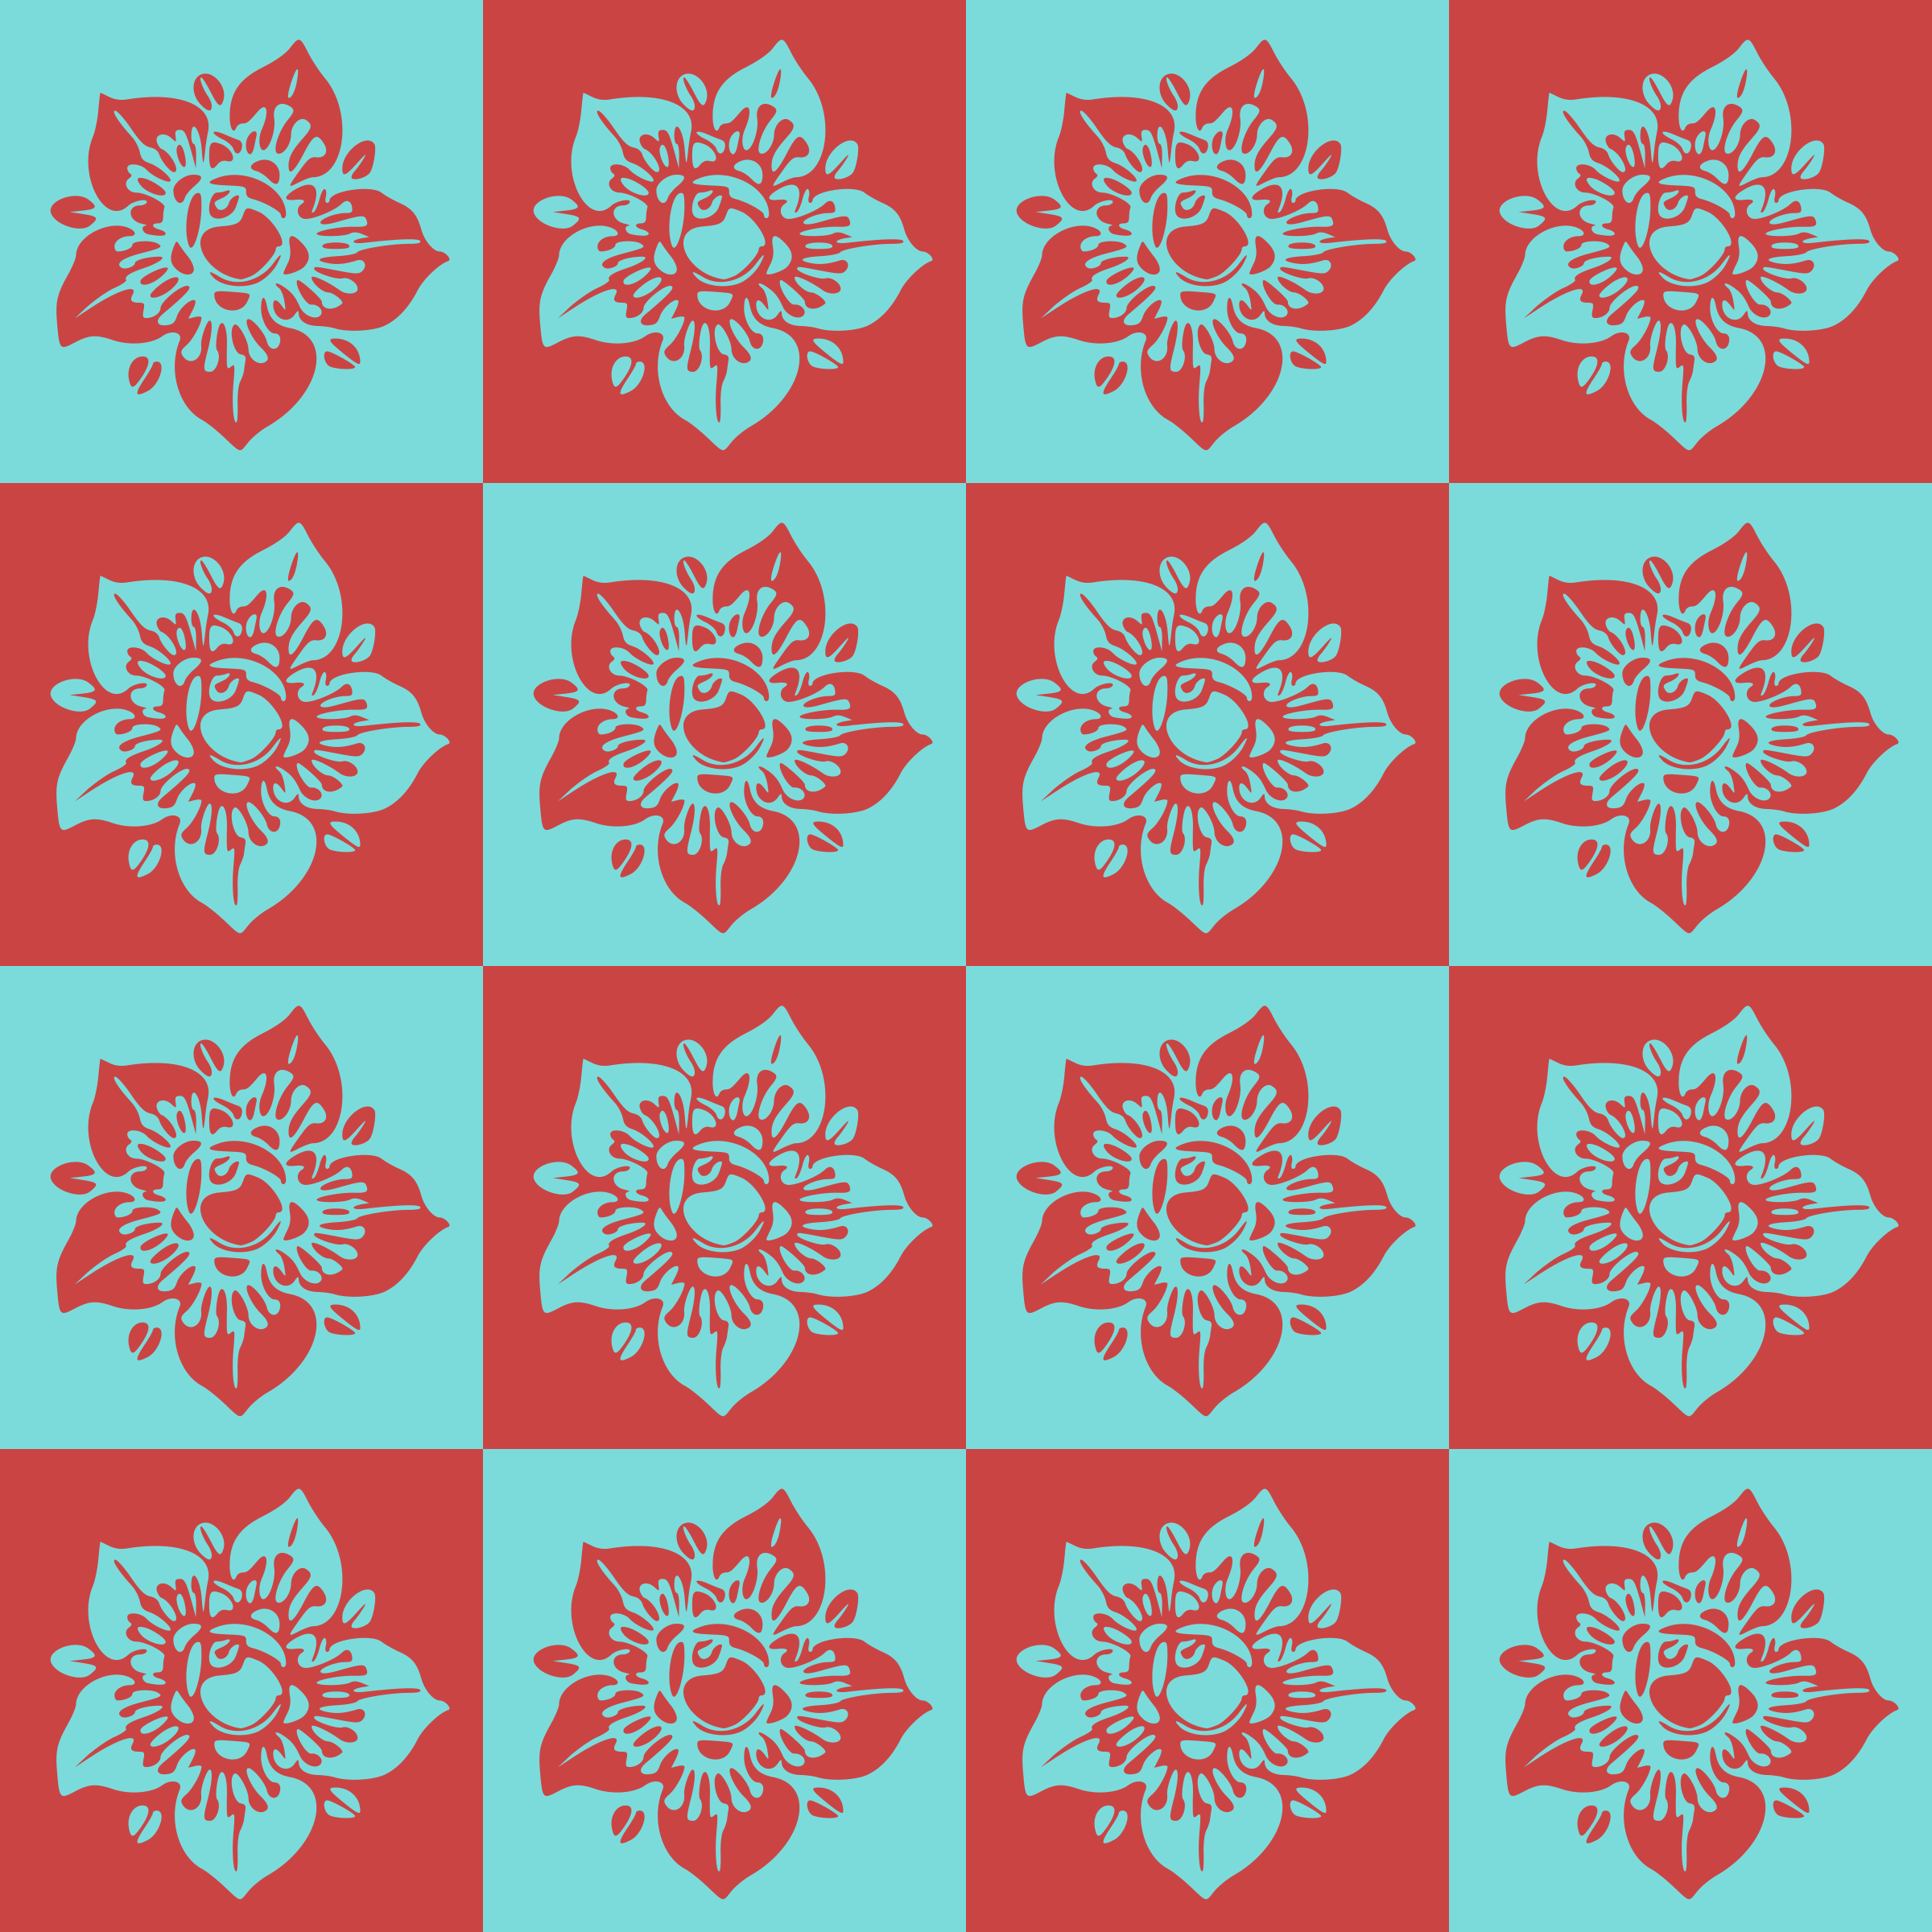 Floral background 23 by Firkin